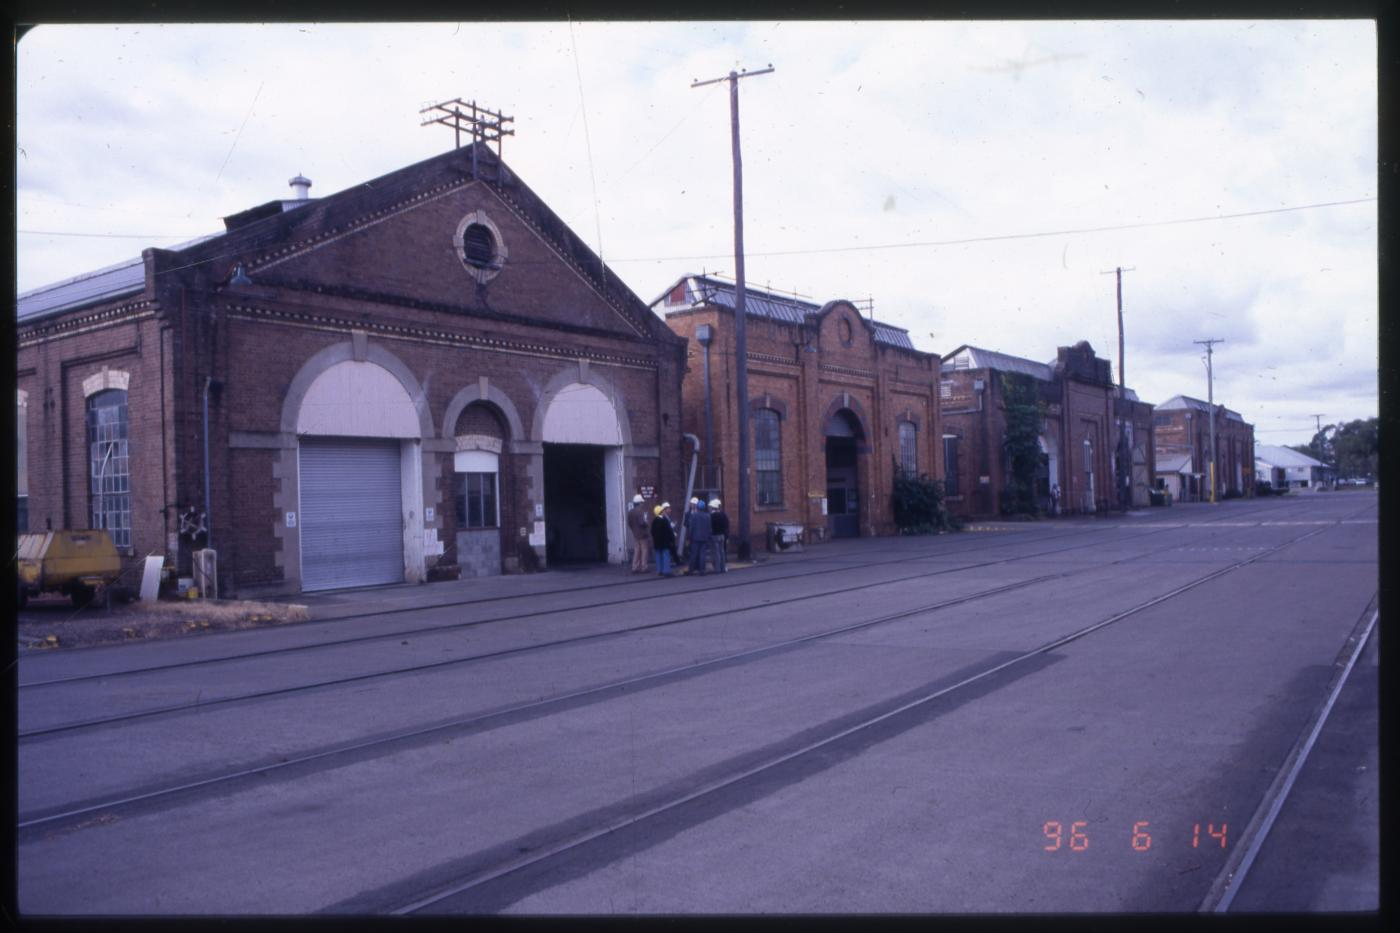 North Ipswich Railway Workshops Complex - Wagon and Store buildings